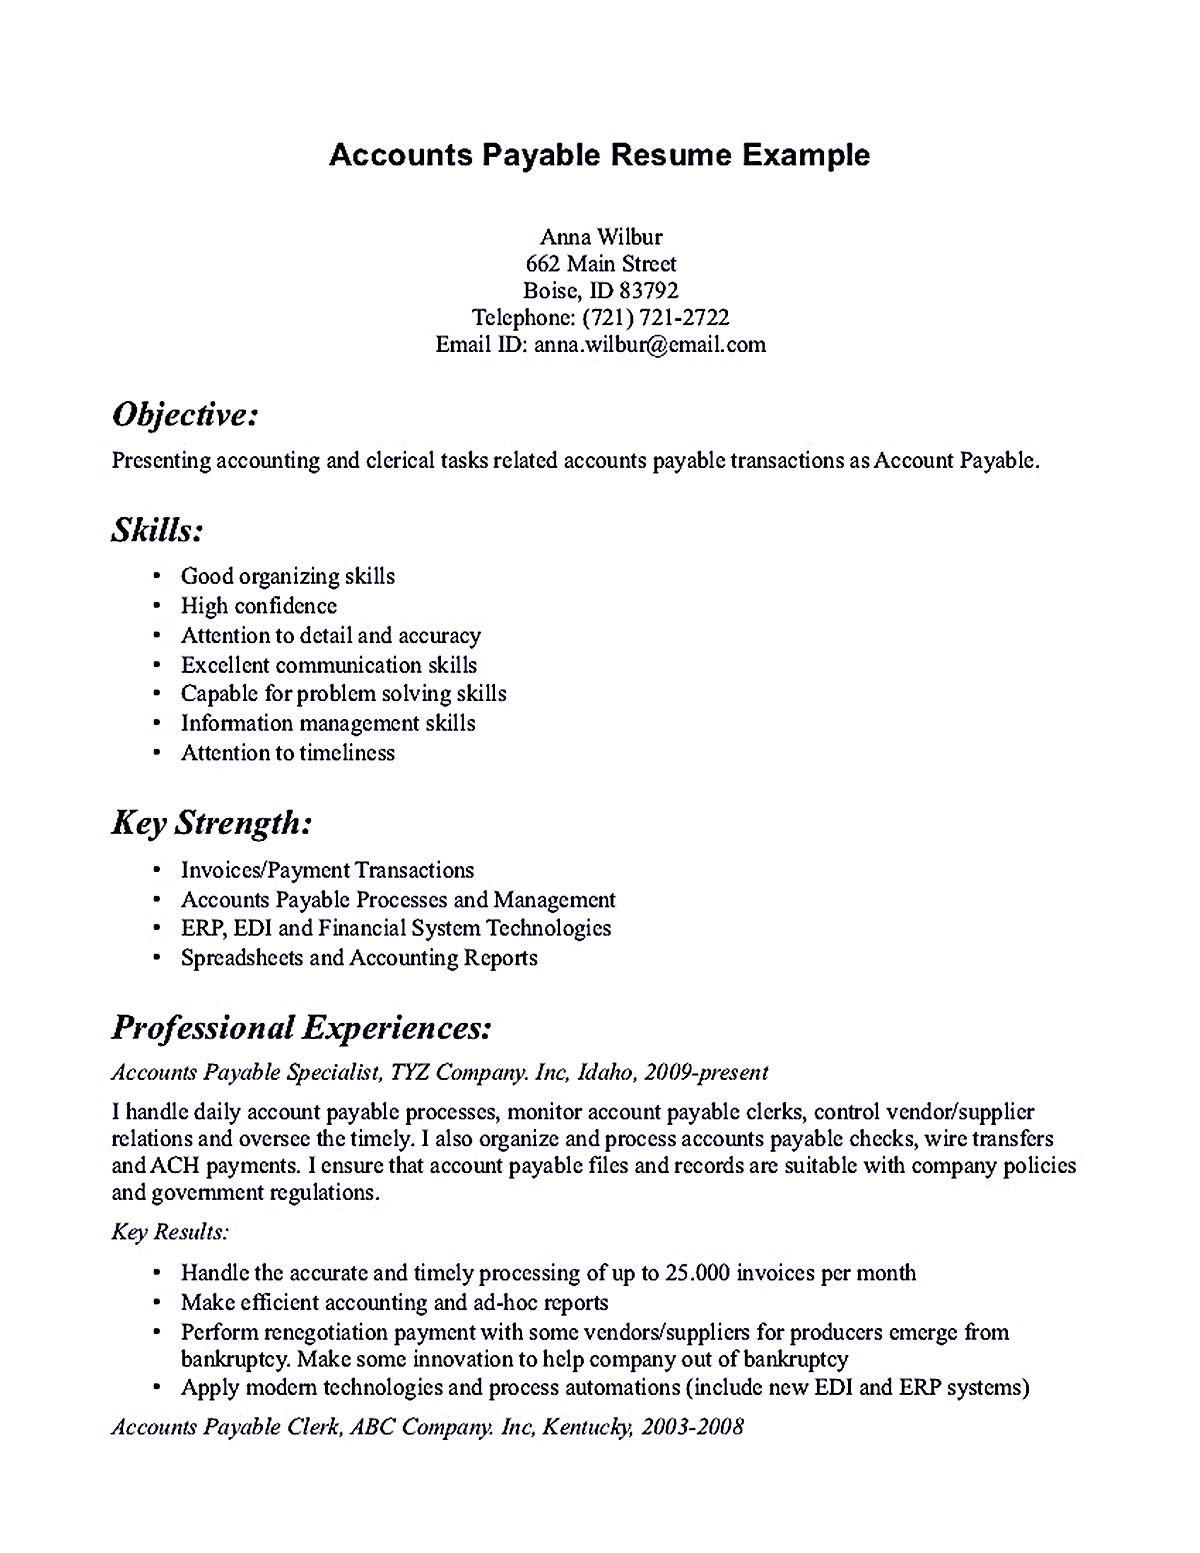 account payable resume display your skills as specialist the interpersonal are men Resume Excellent Communication Skills Resume